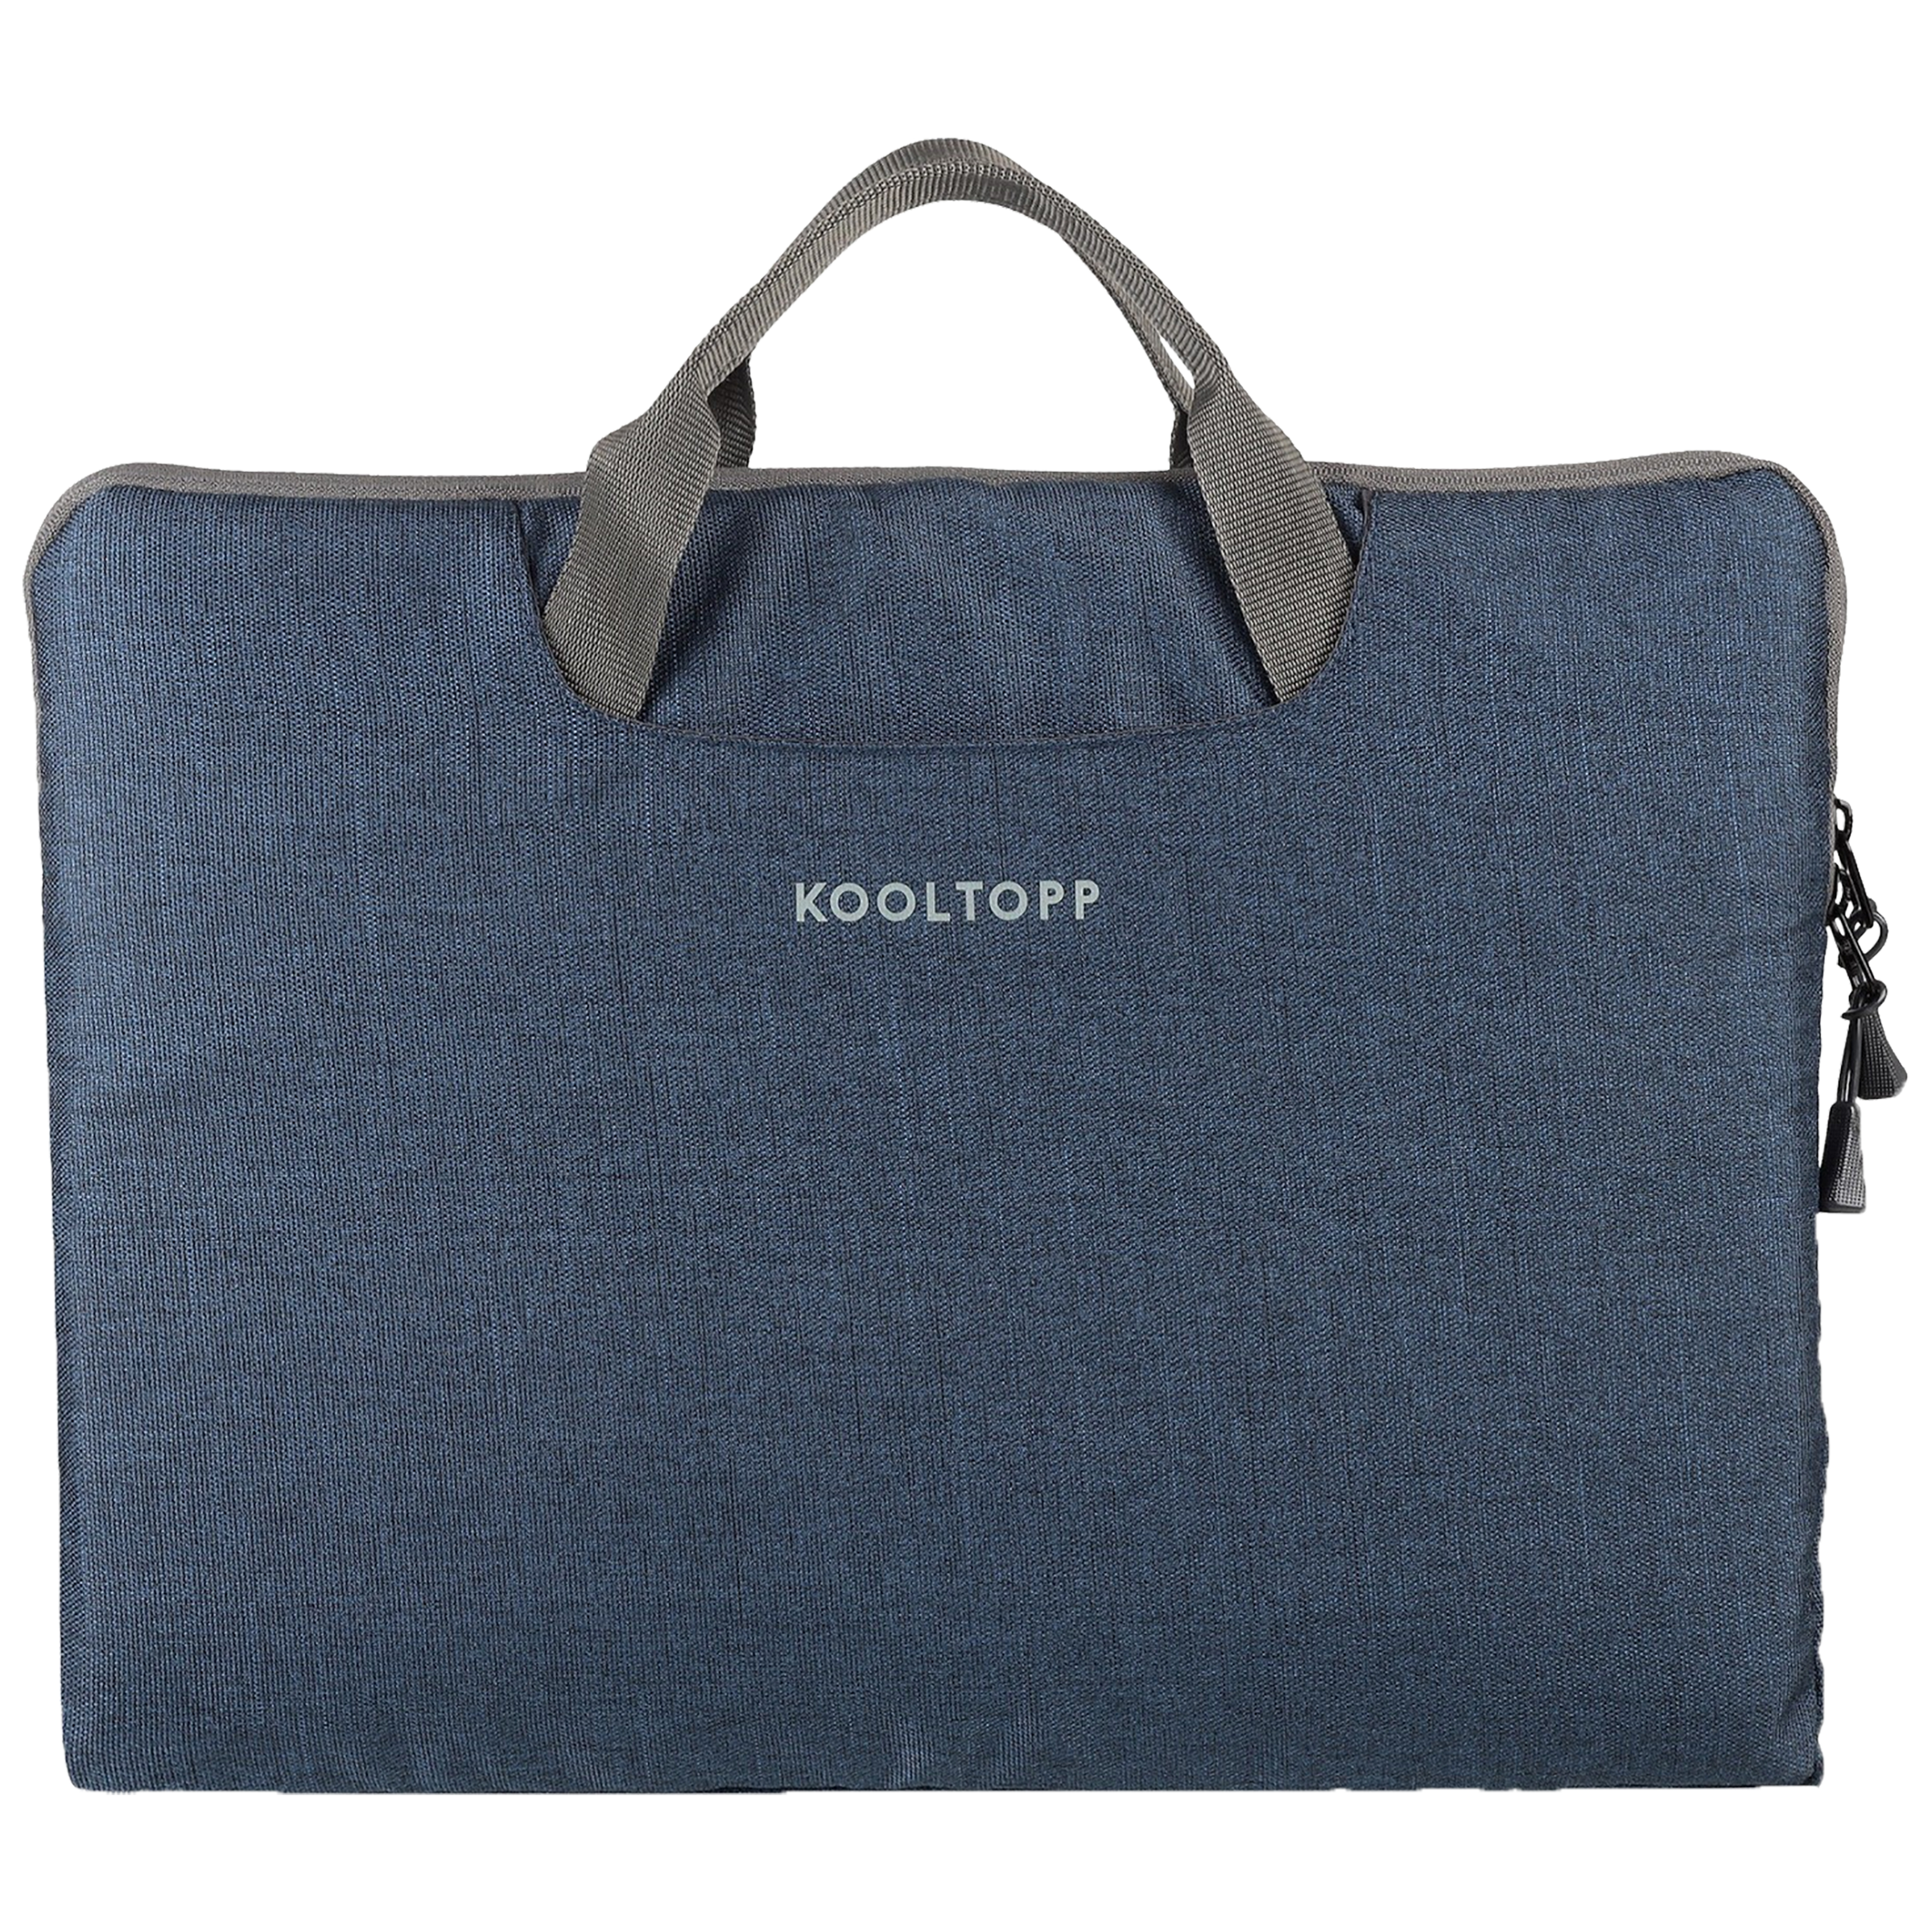 Kooltopp Classy Polyester Sleeve for 14 Inch Laptop (Water Resistant, KT444-16, Blue)_1